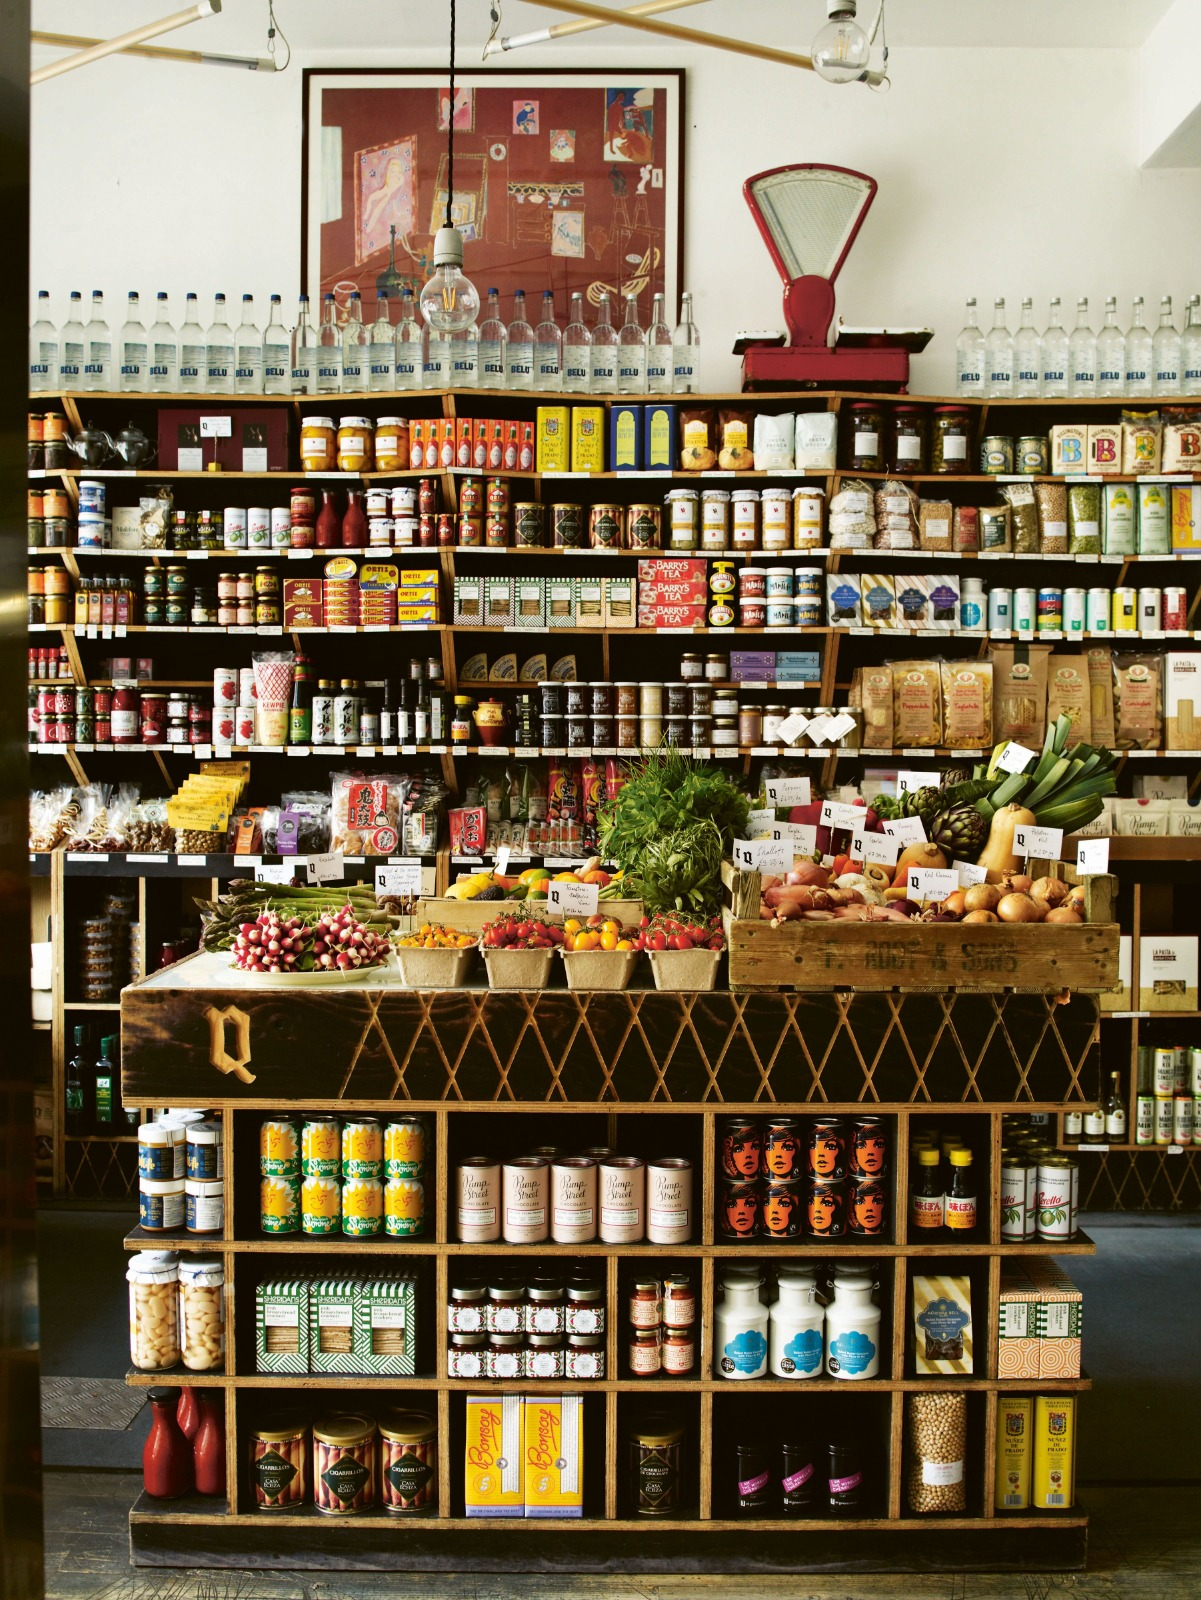 Quality Chop Shop, Clerkenwell, one of the best places in London to buy fine food and provisions during the novel coronavirus COVID-19 pandemic